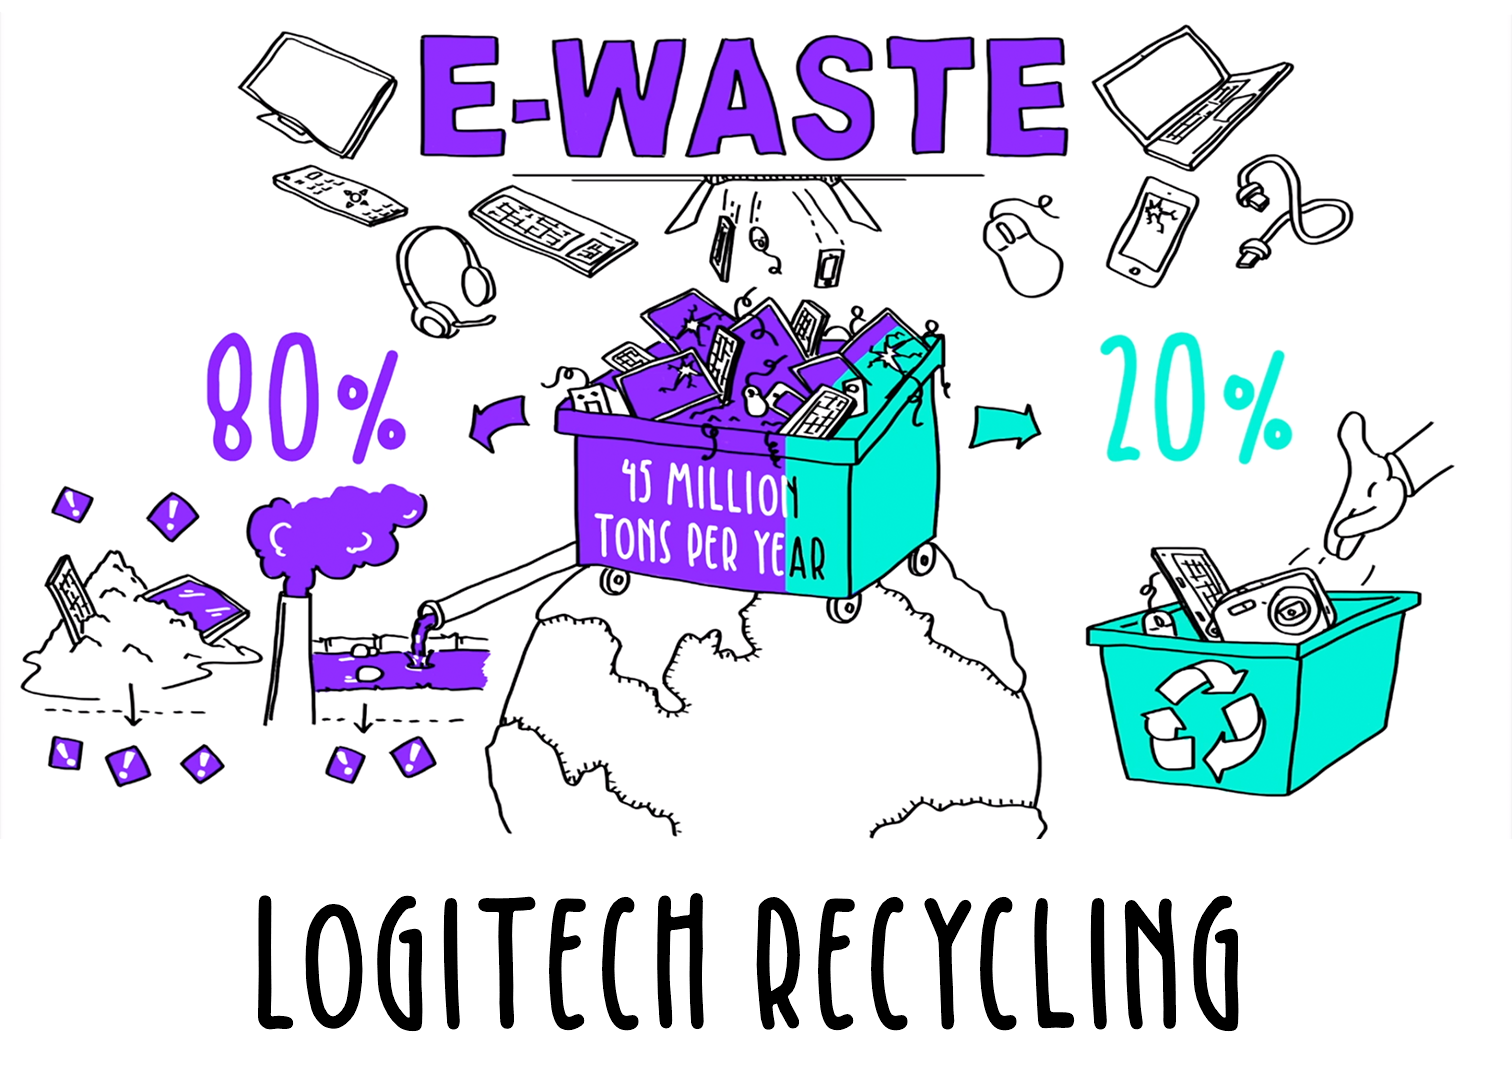 Logitech: electronic waste recycling